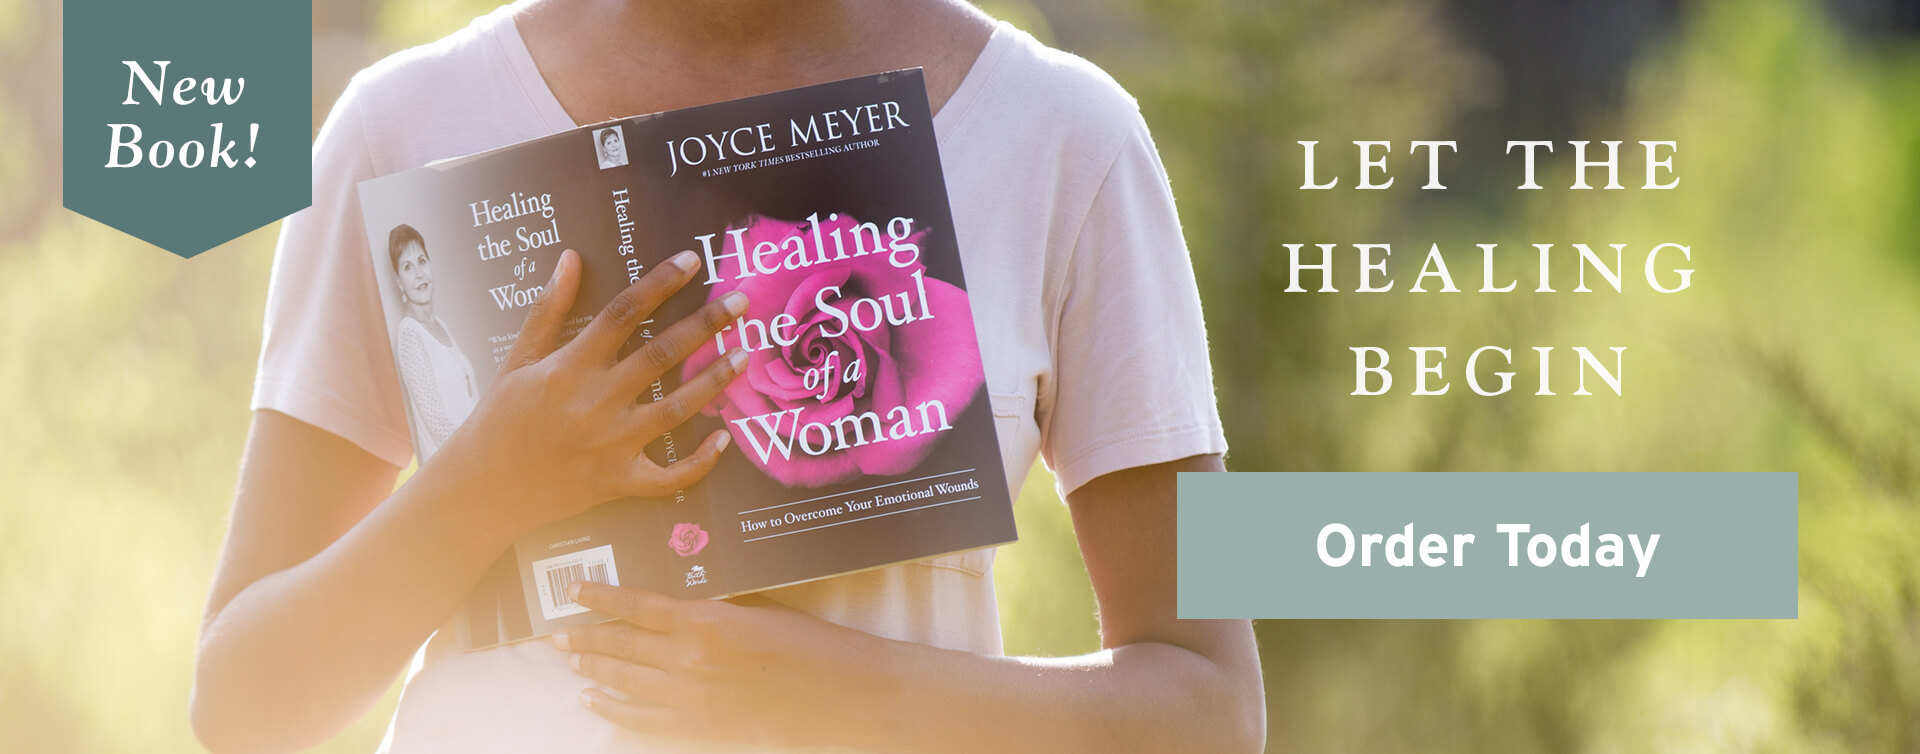 joyce meyer confident woman study guide